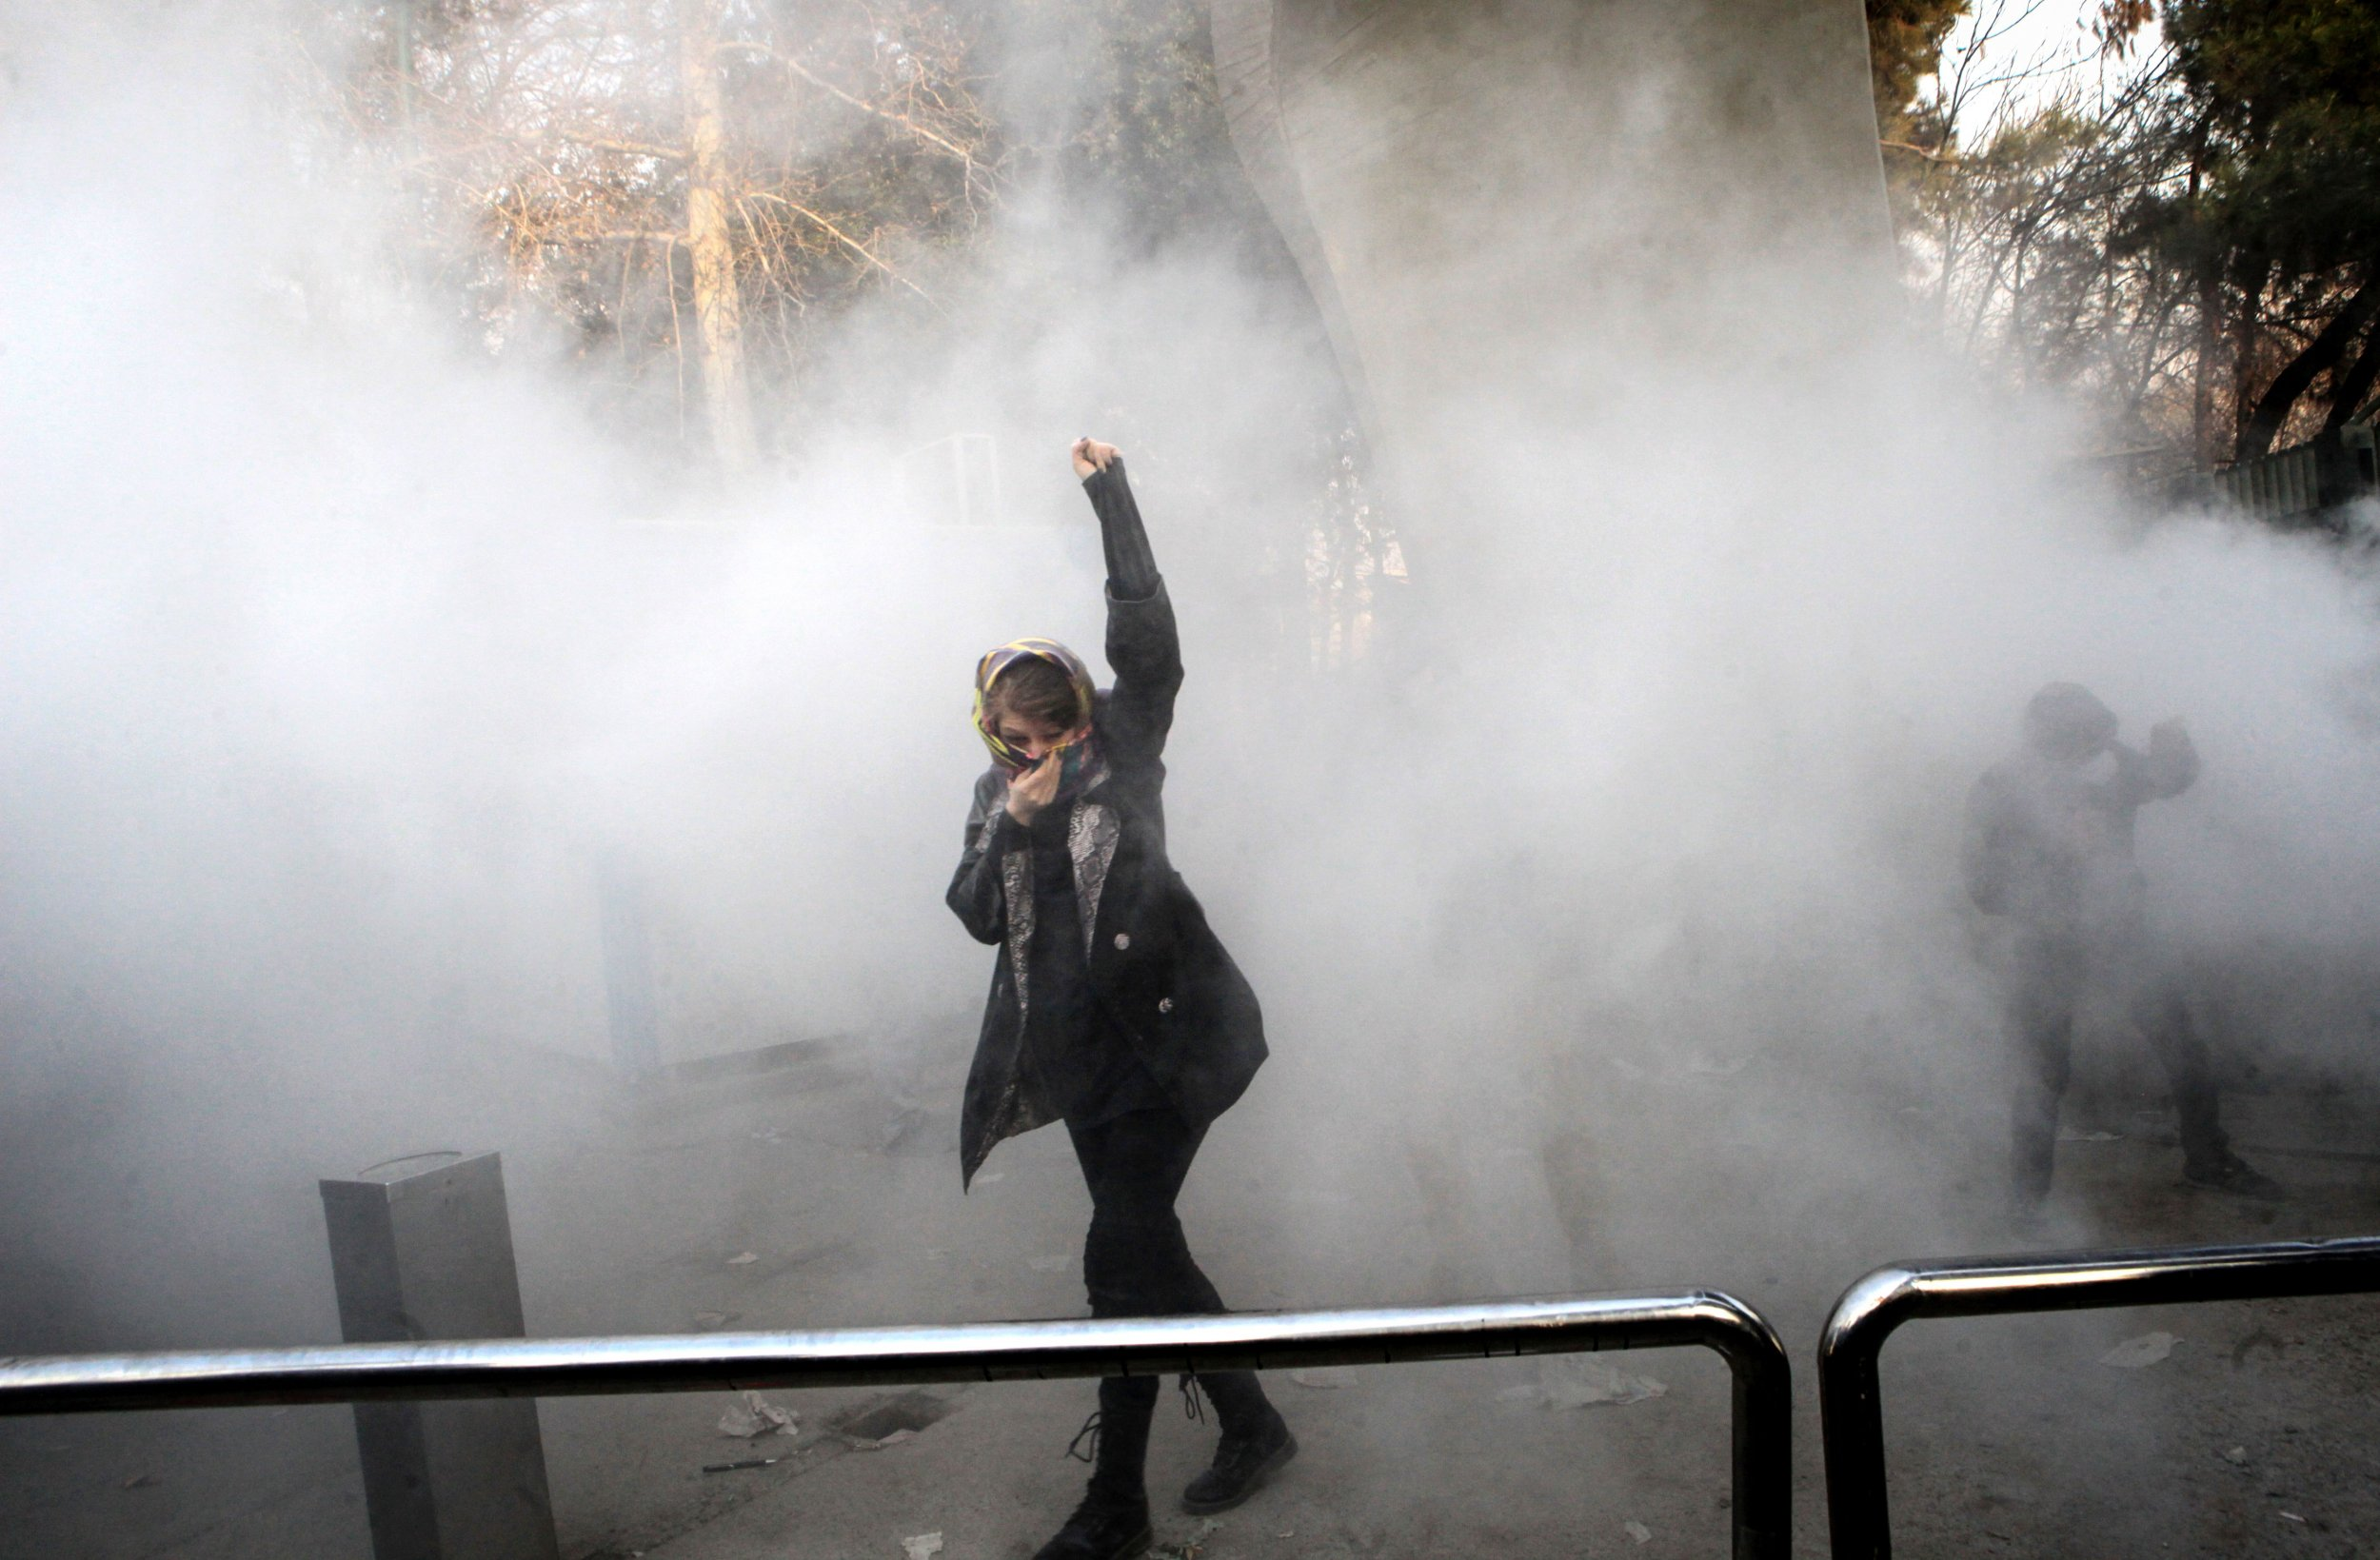 trump, iran, photo, shame, sorrow, protest, tweet